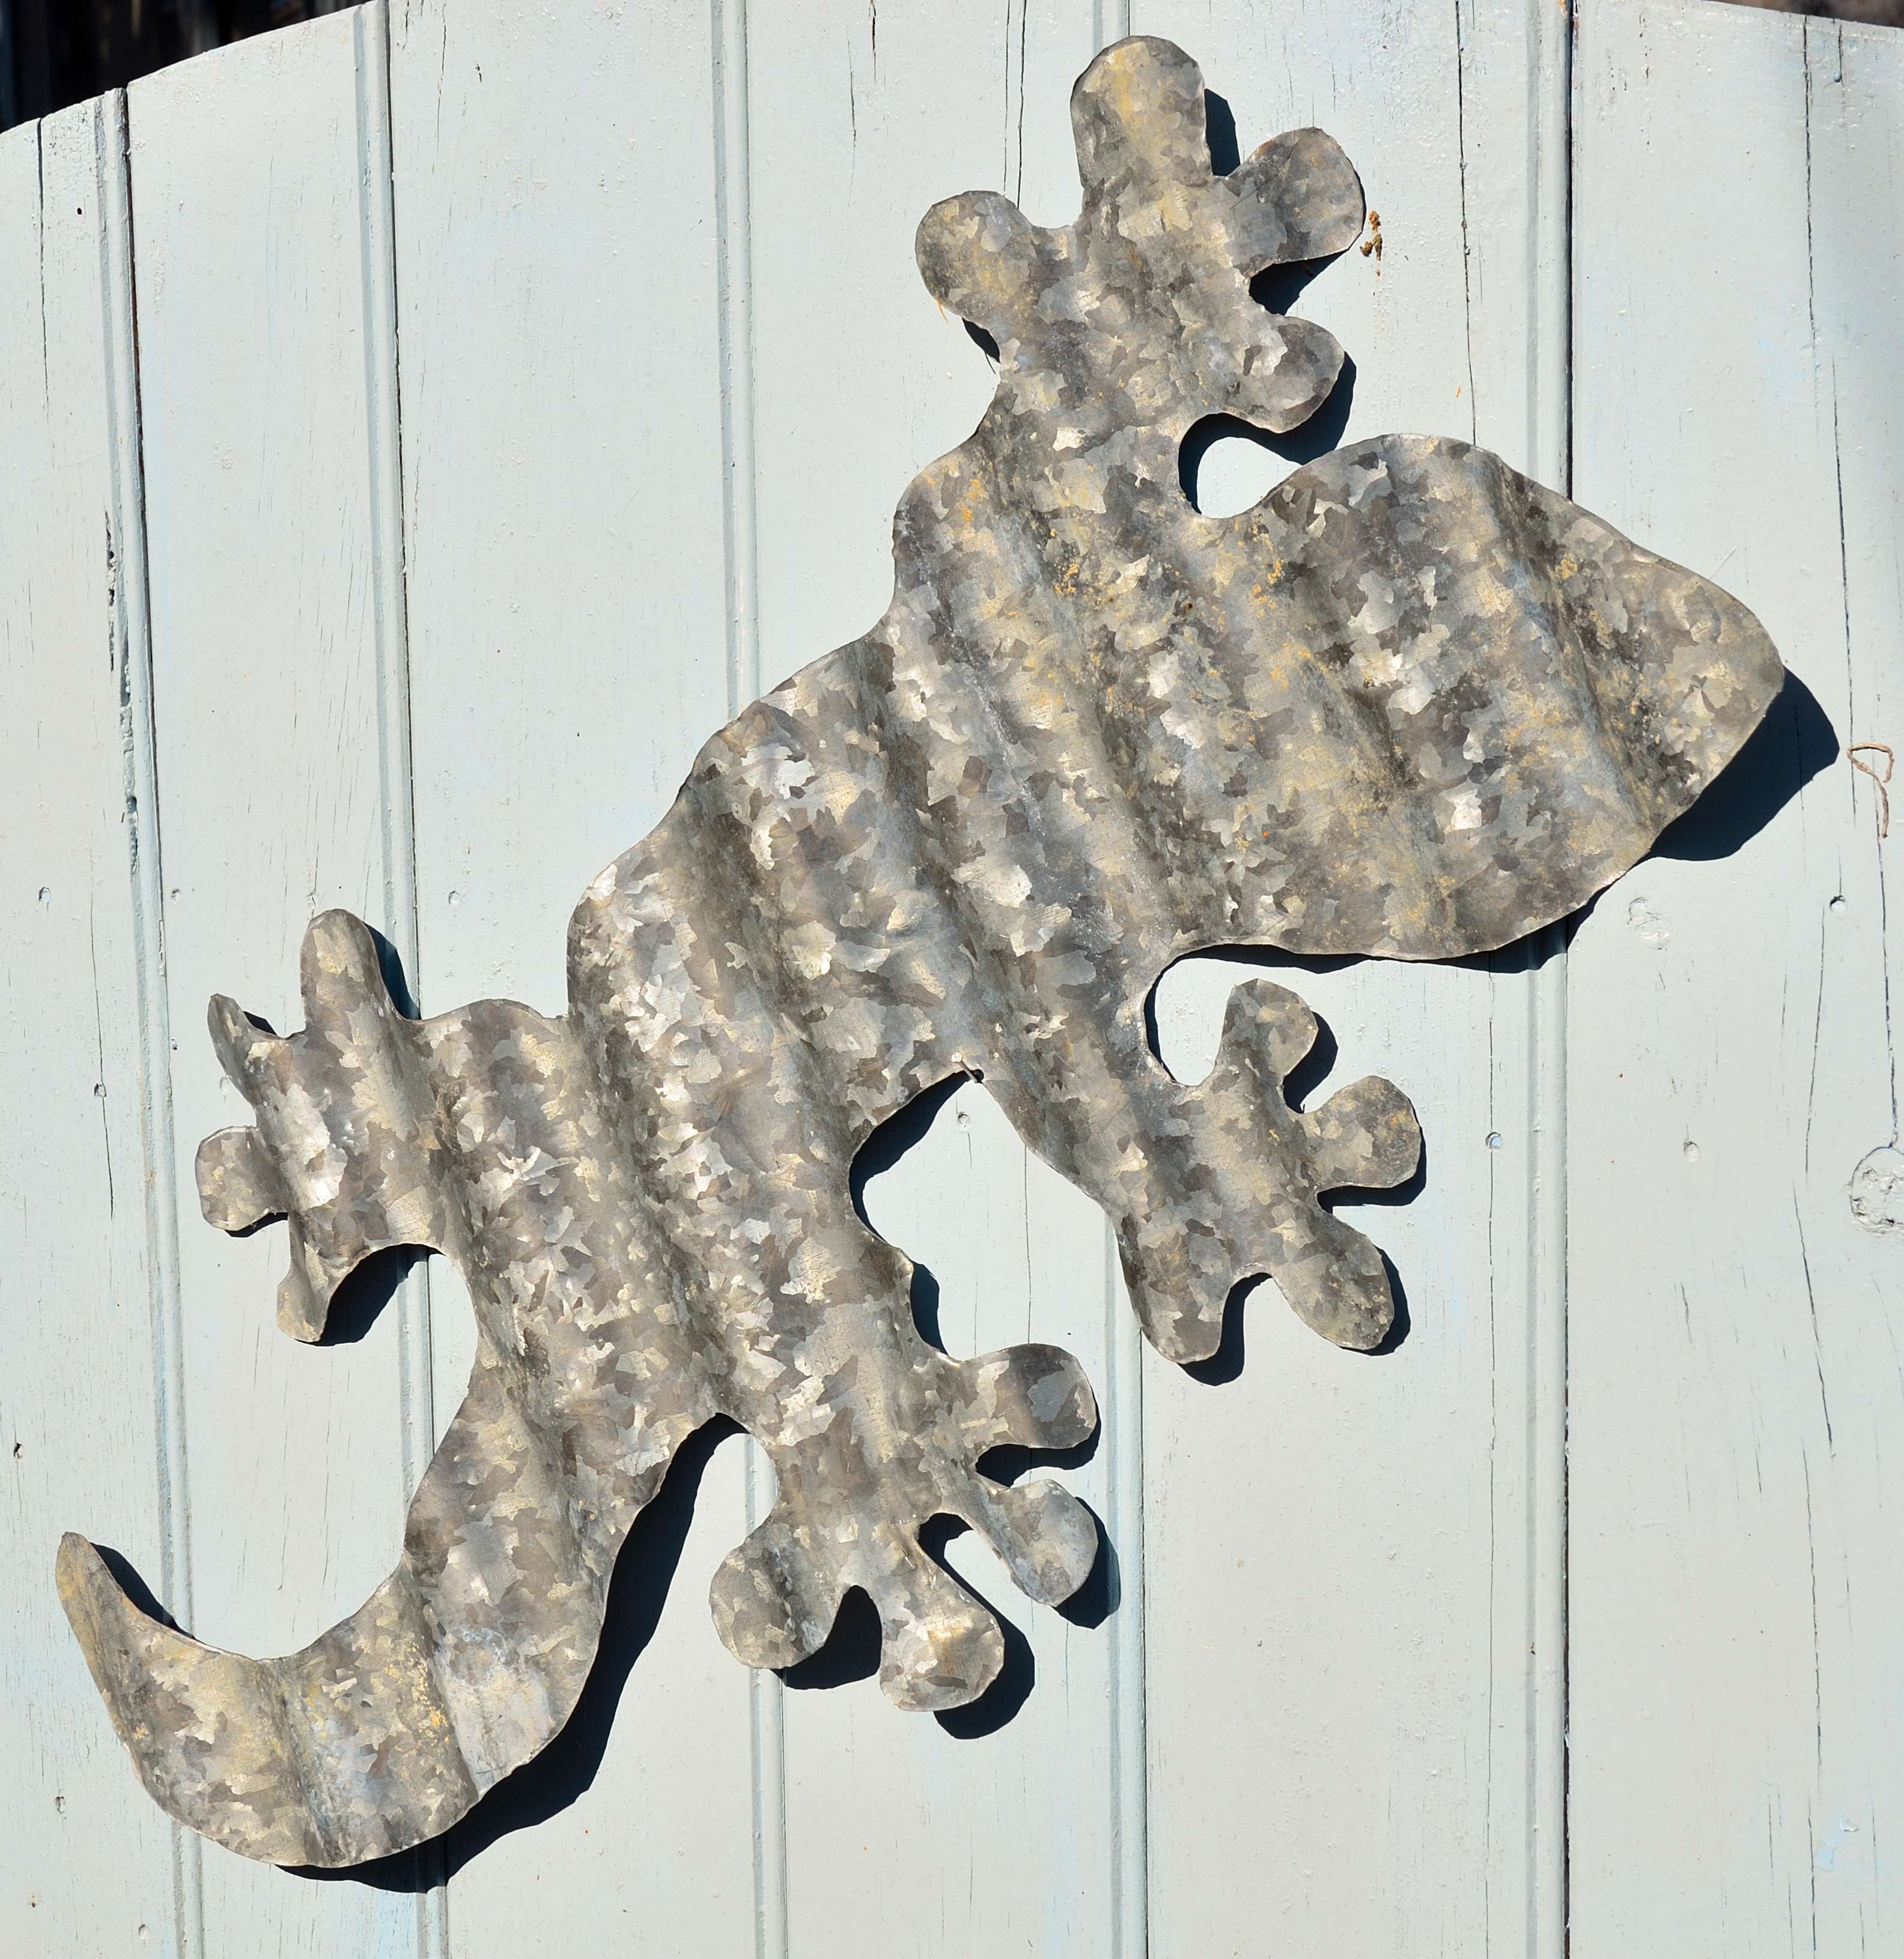 Lizard From Recycled Corrugated Iron